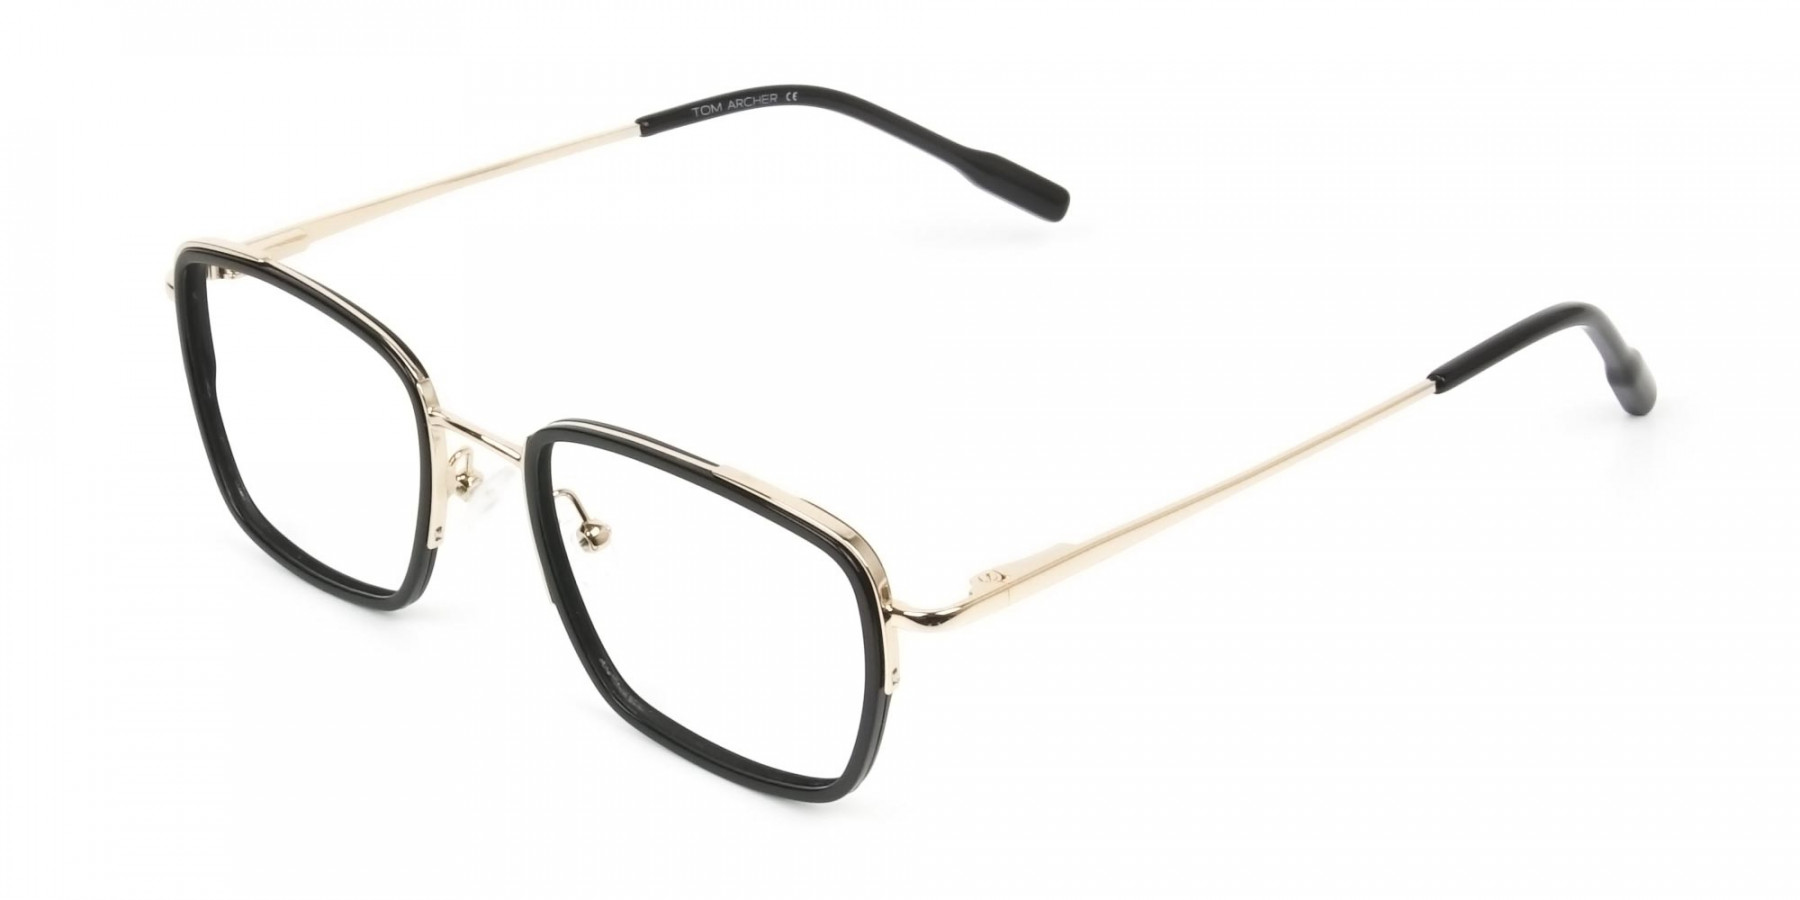 Spider Man Glasses in Black & Gold - 1